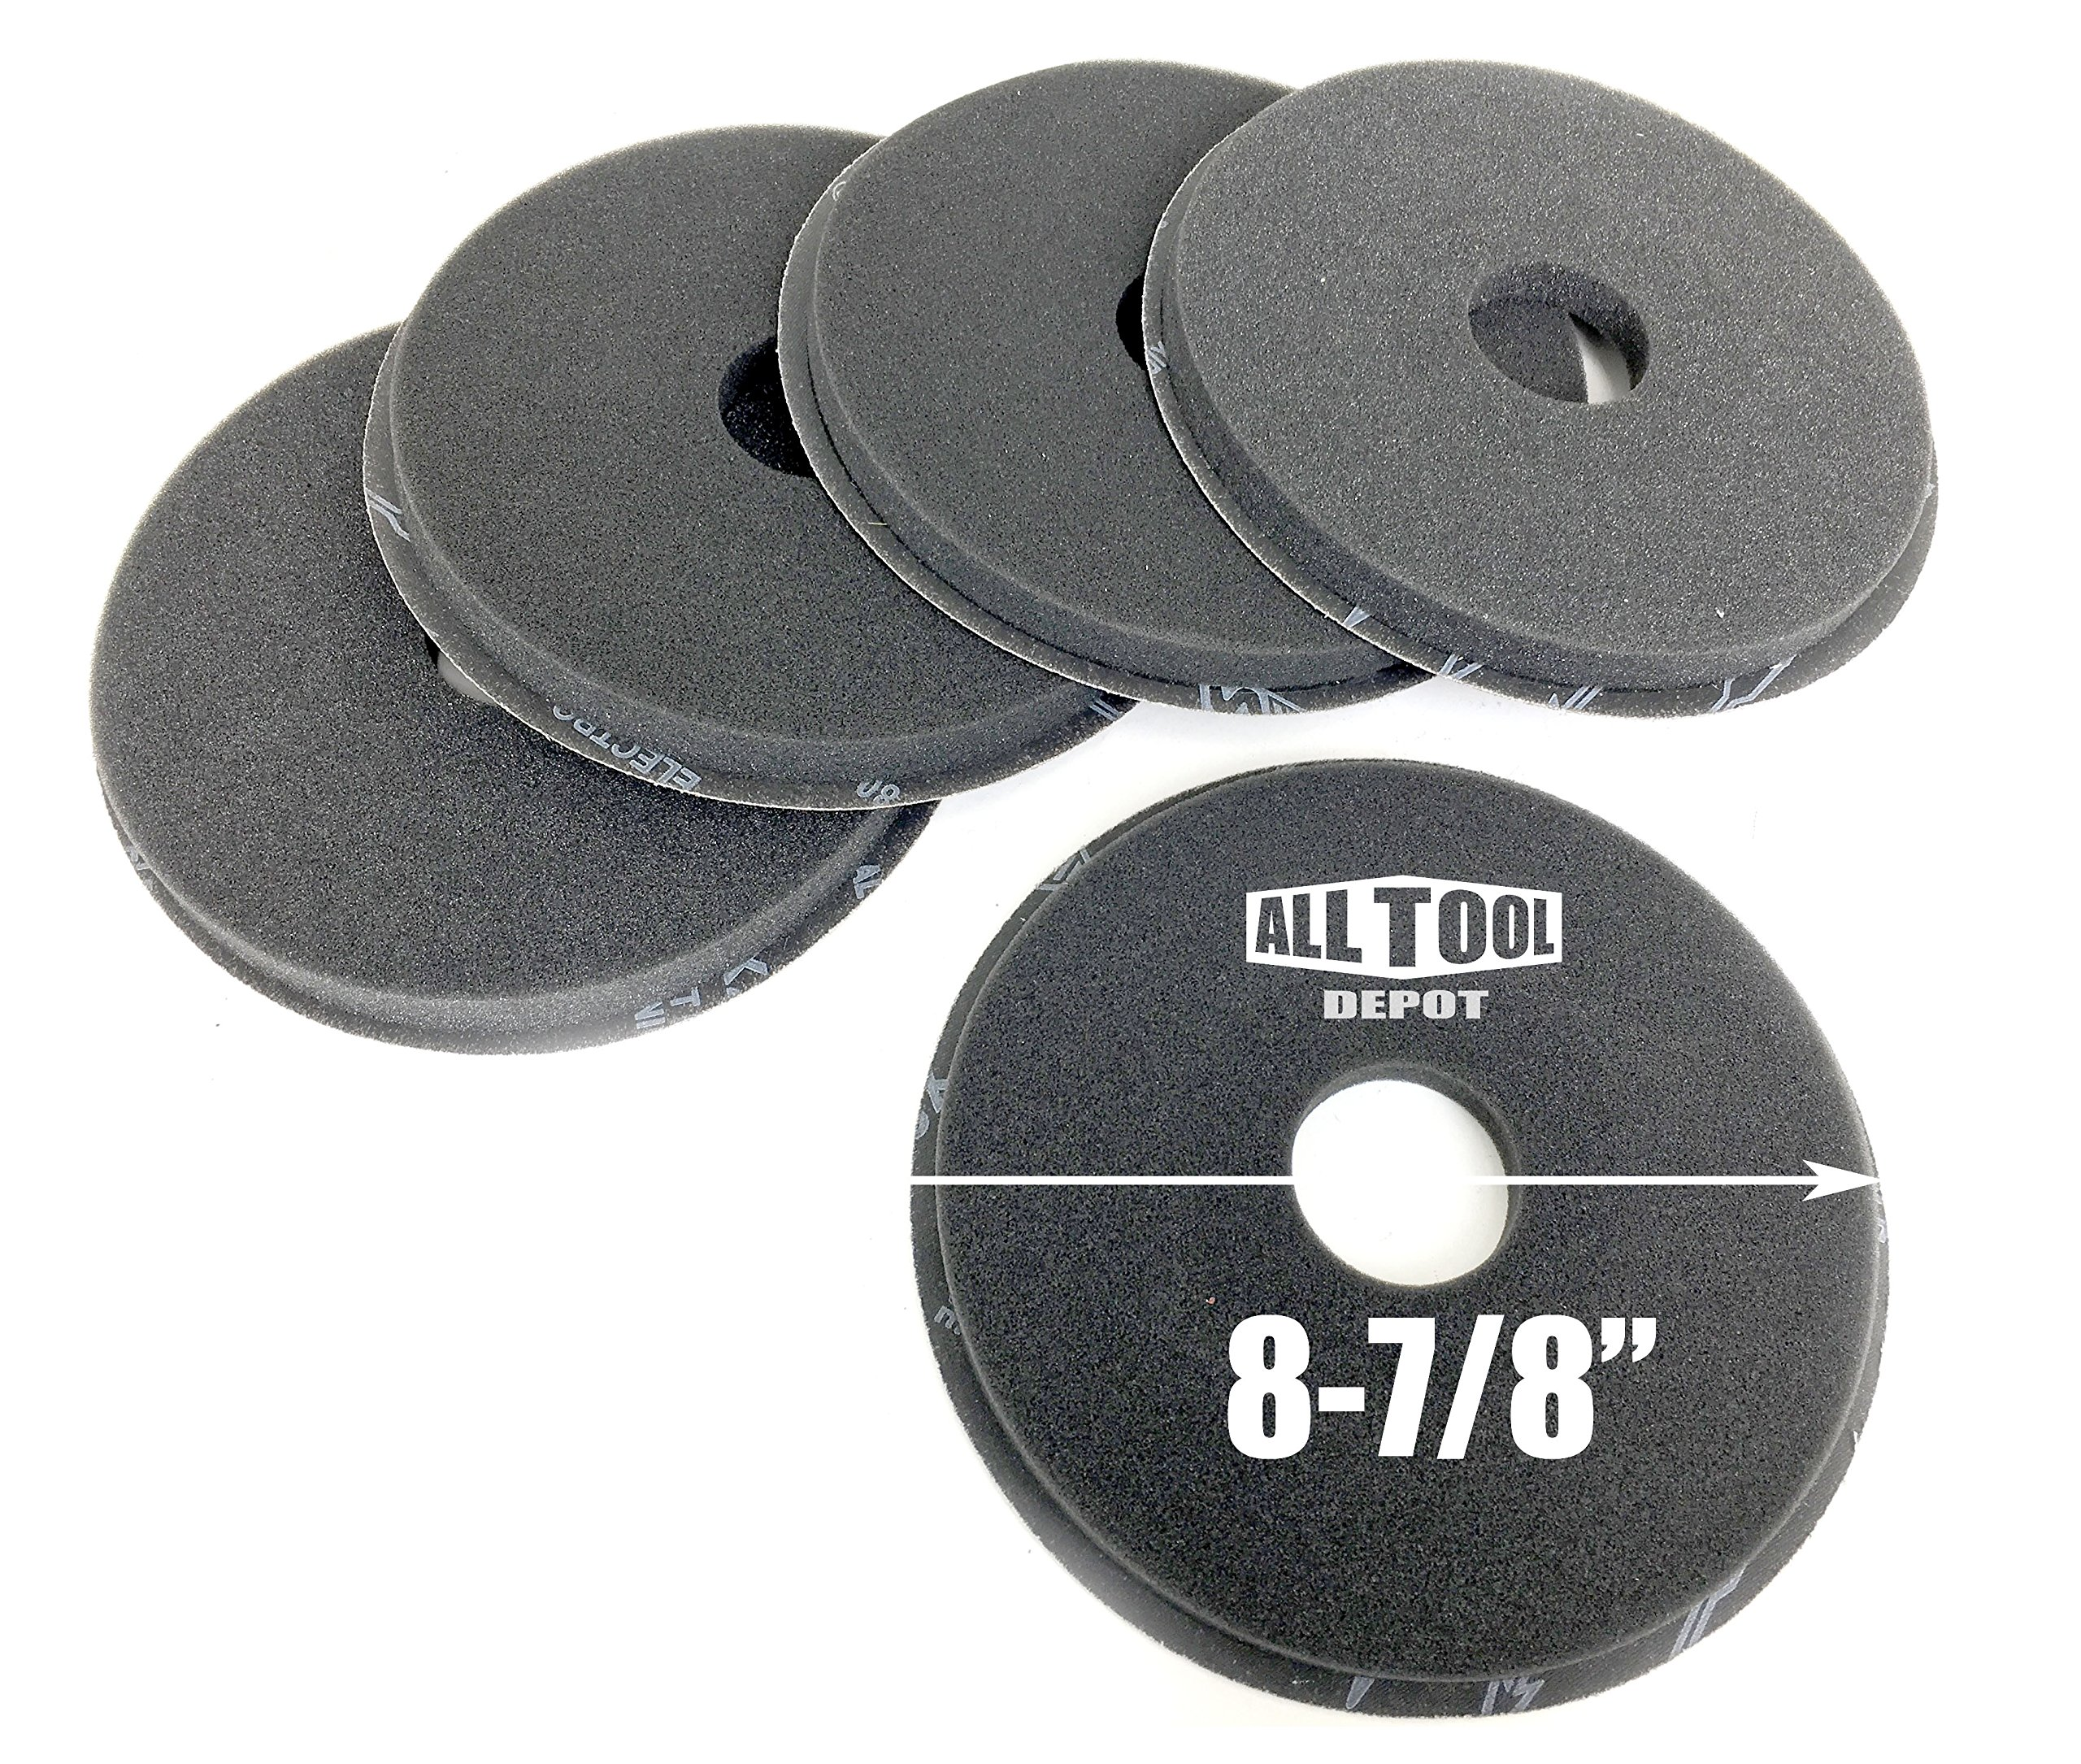 Best In USA PORTER-CABLE 7800 Drywall Sander 100 Grit Drywall Sanding Disc (5-Pack)